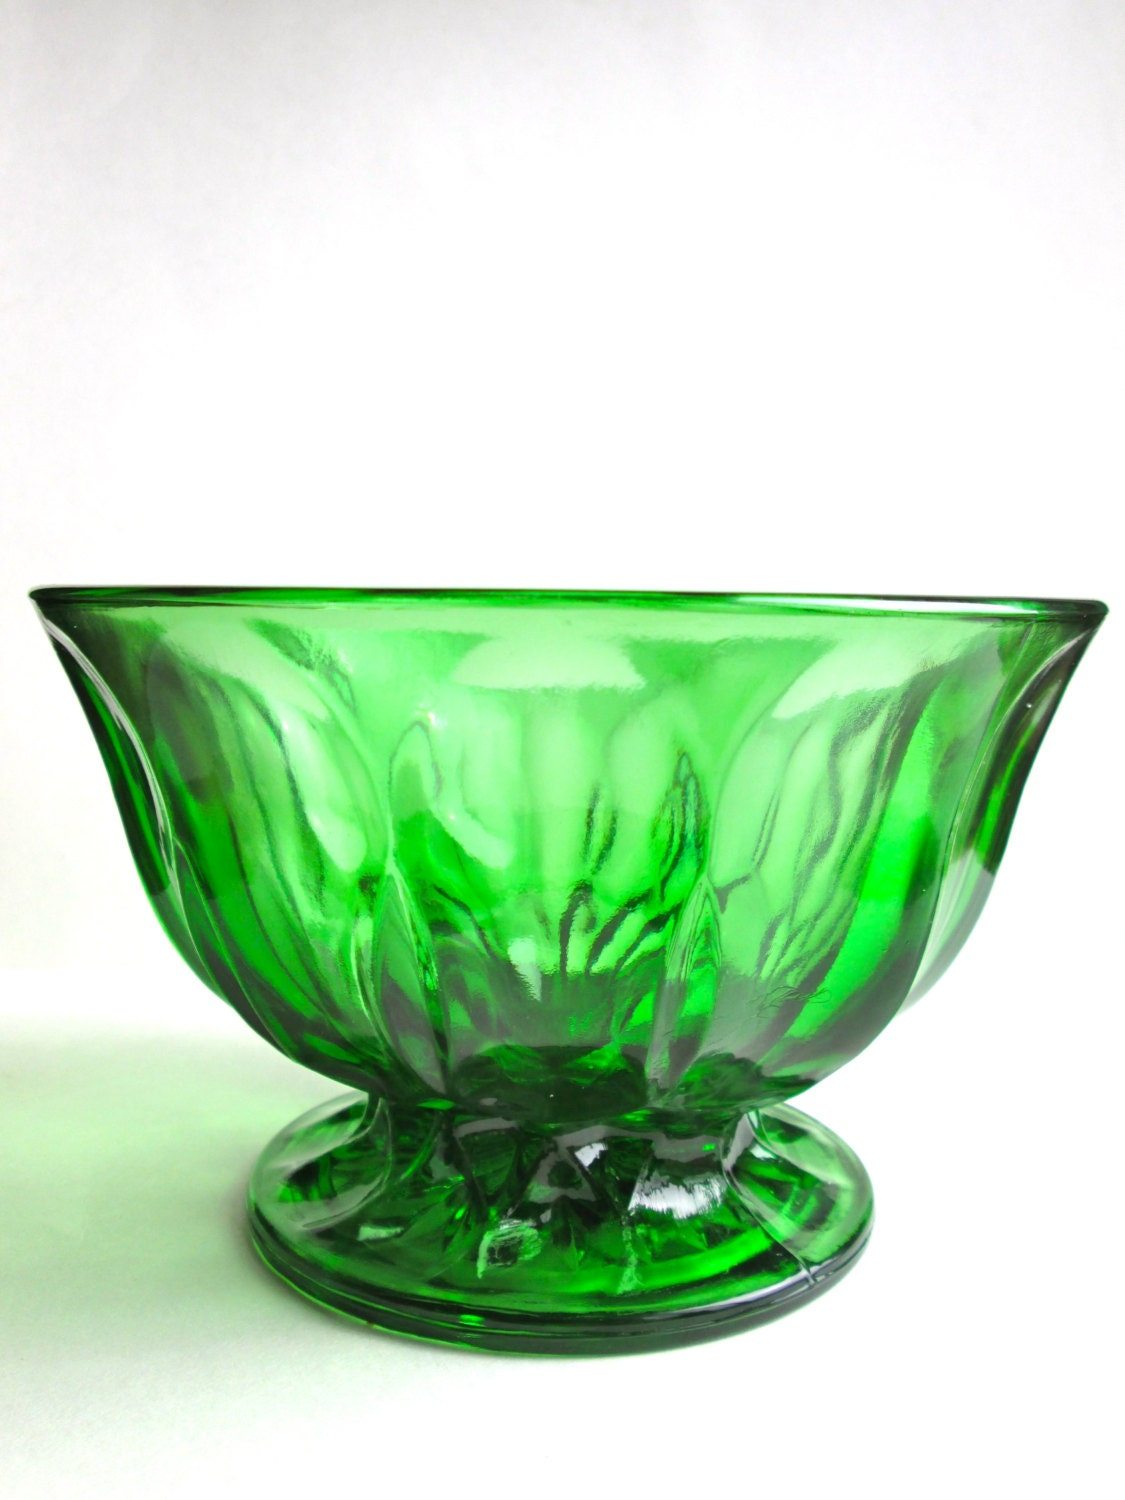 Footed Glass Bowl Pretty and sophisticated footed bowl is great for serving fruits, puddings, dips and more. Designed in a modern, streamlined look with mouth-blown glass in Poland.